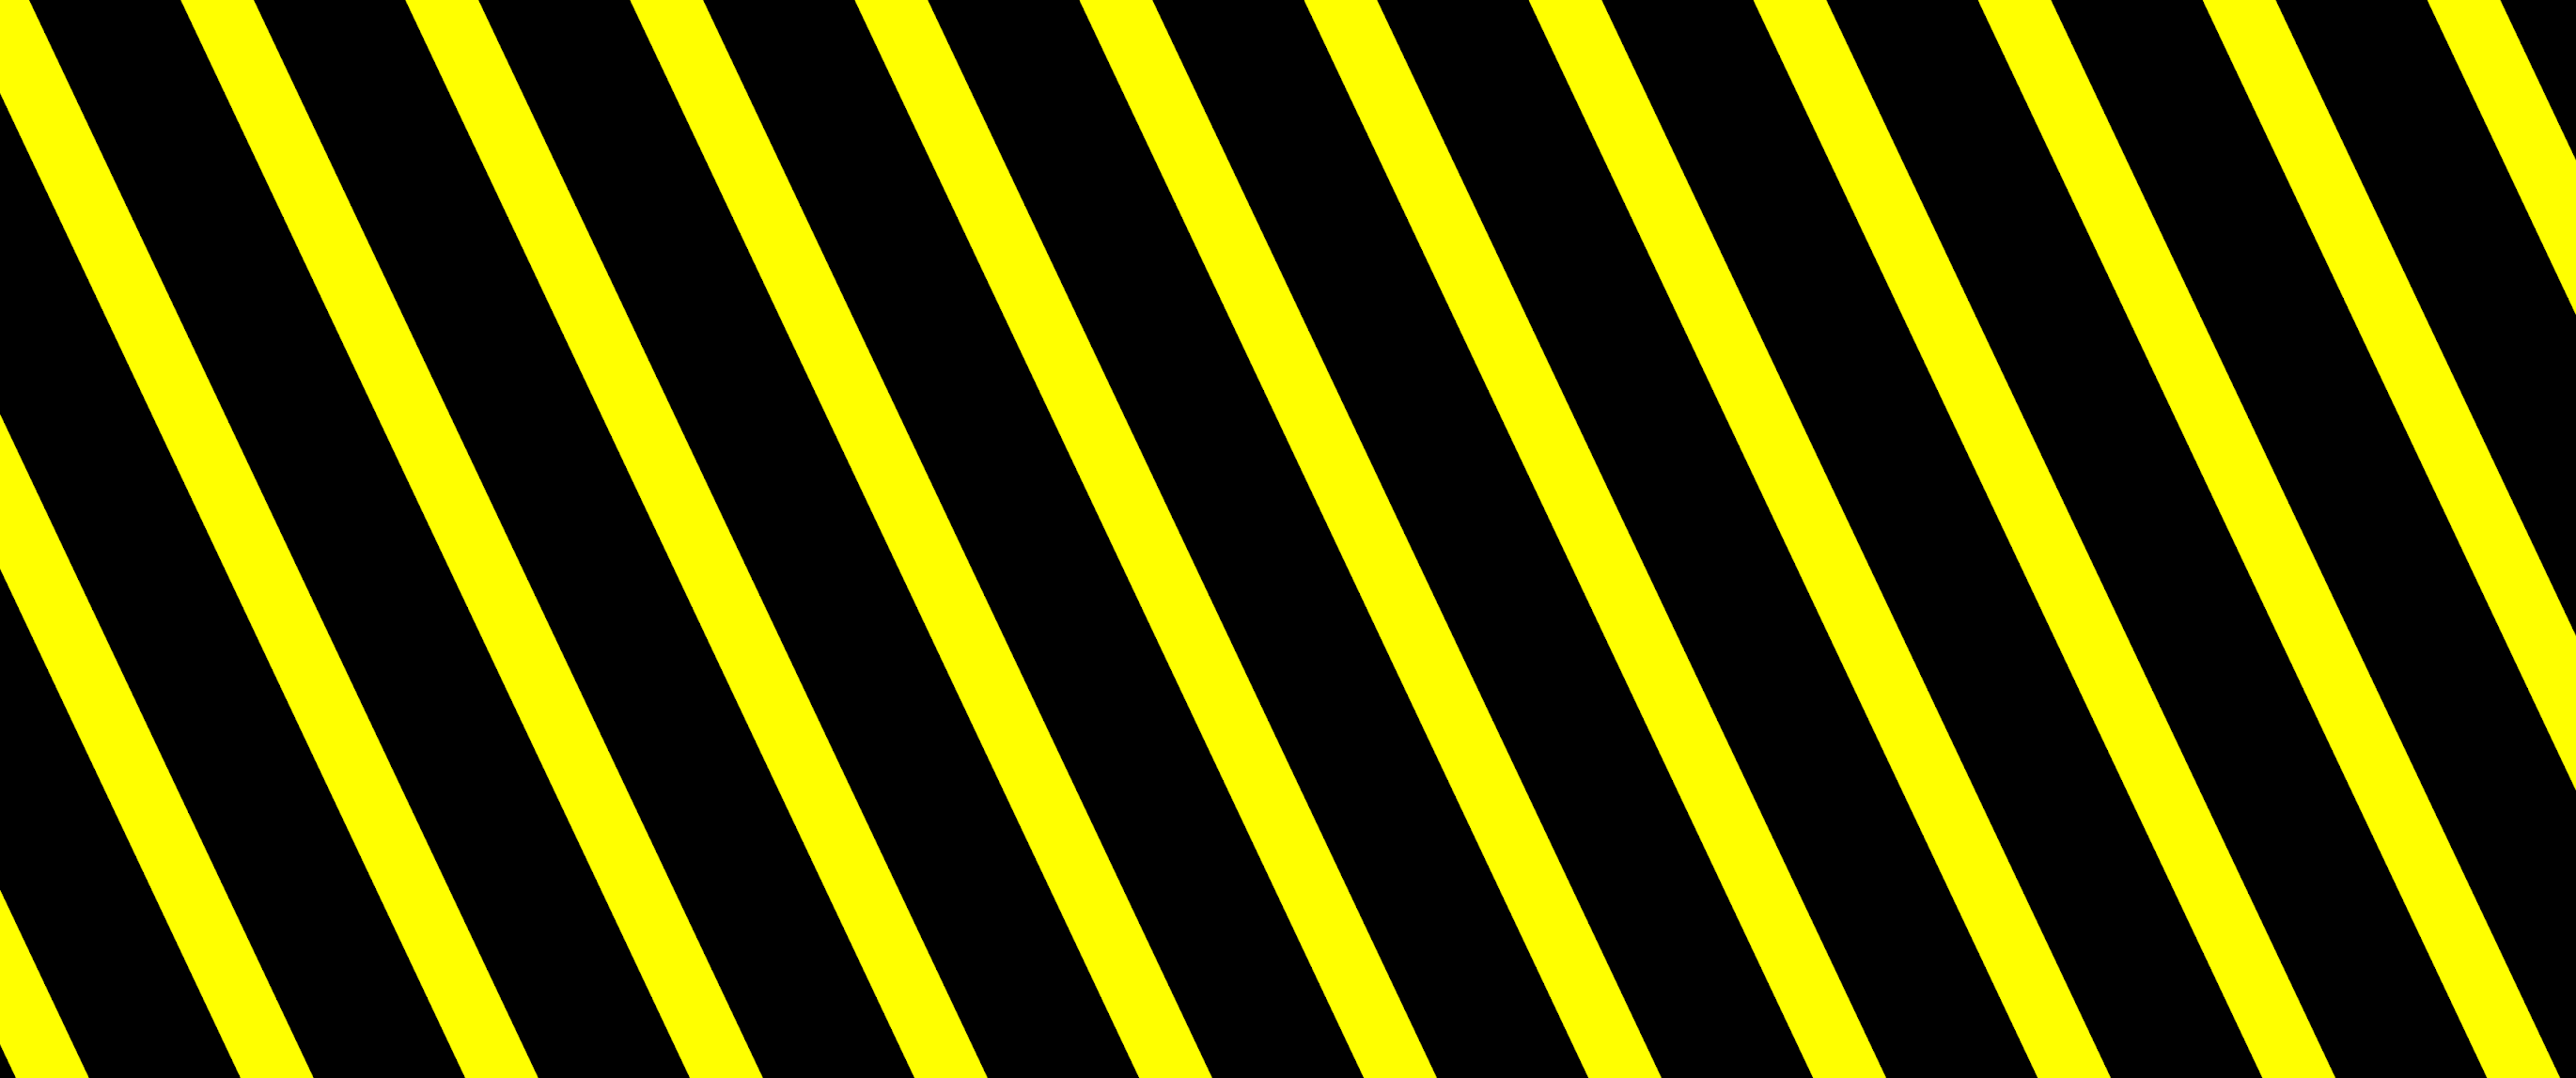 WARNING CAUTION TAPE BLACK AND YELLOW WIDE WALLPAPER